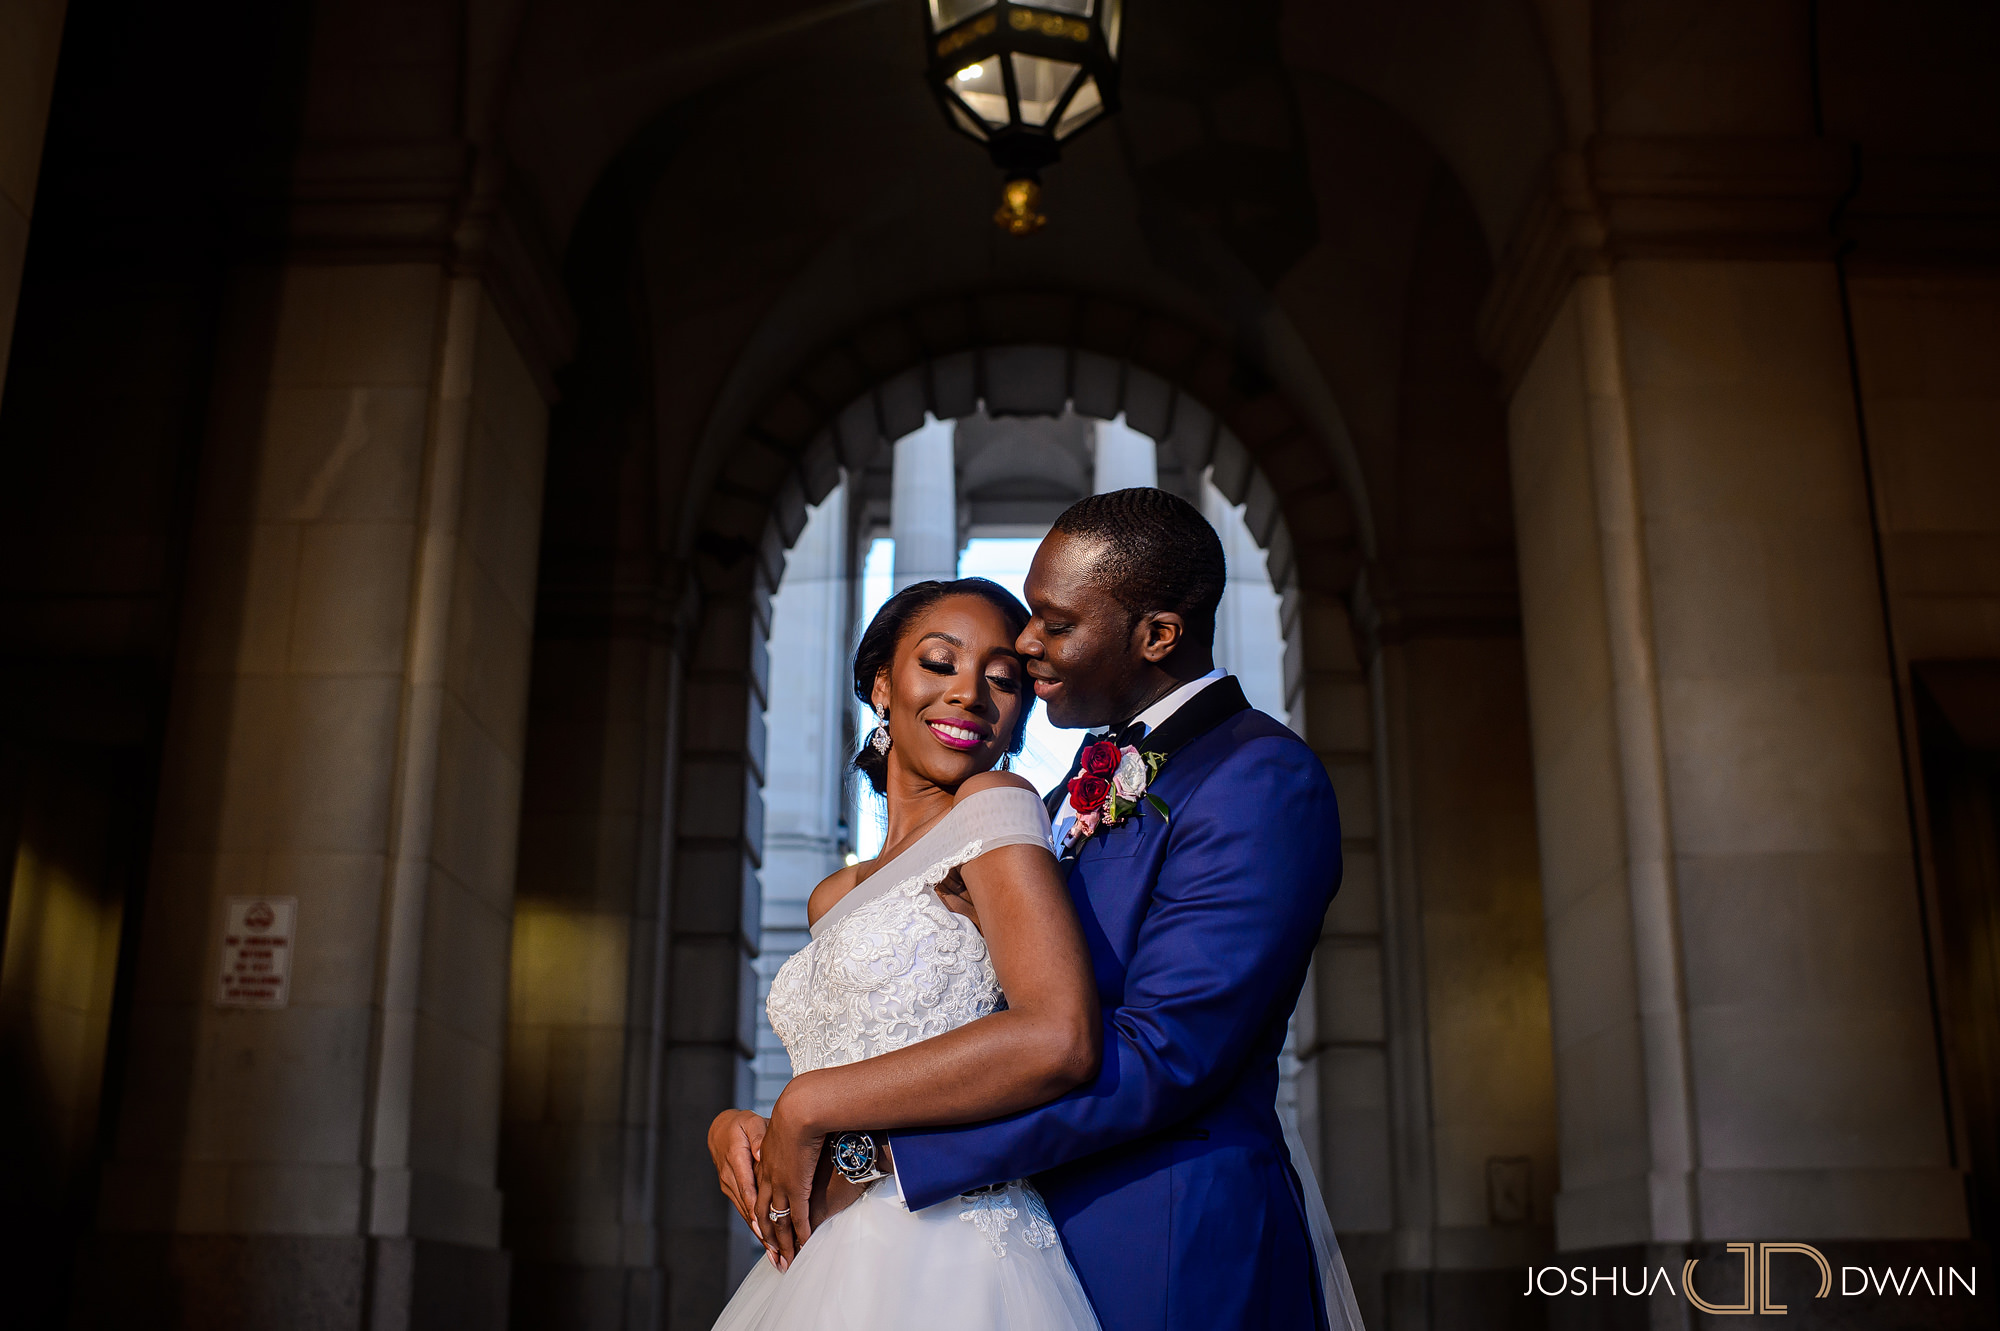 emerald-tolu--001-ronald-reagan-building-trade-center-best-washington-dc--wedding-photographer-joshua-dwain